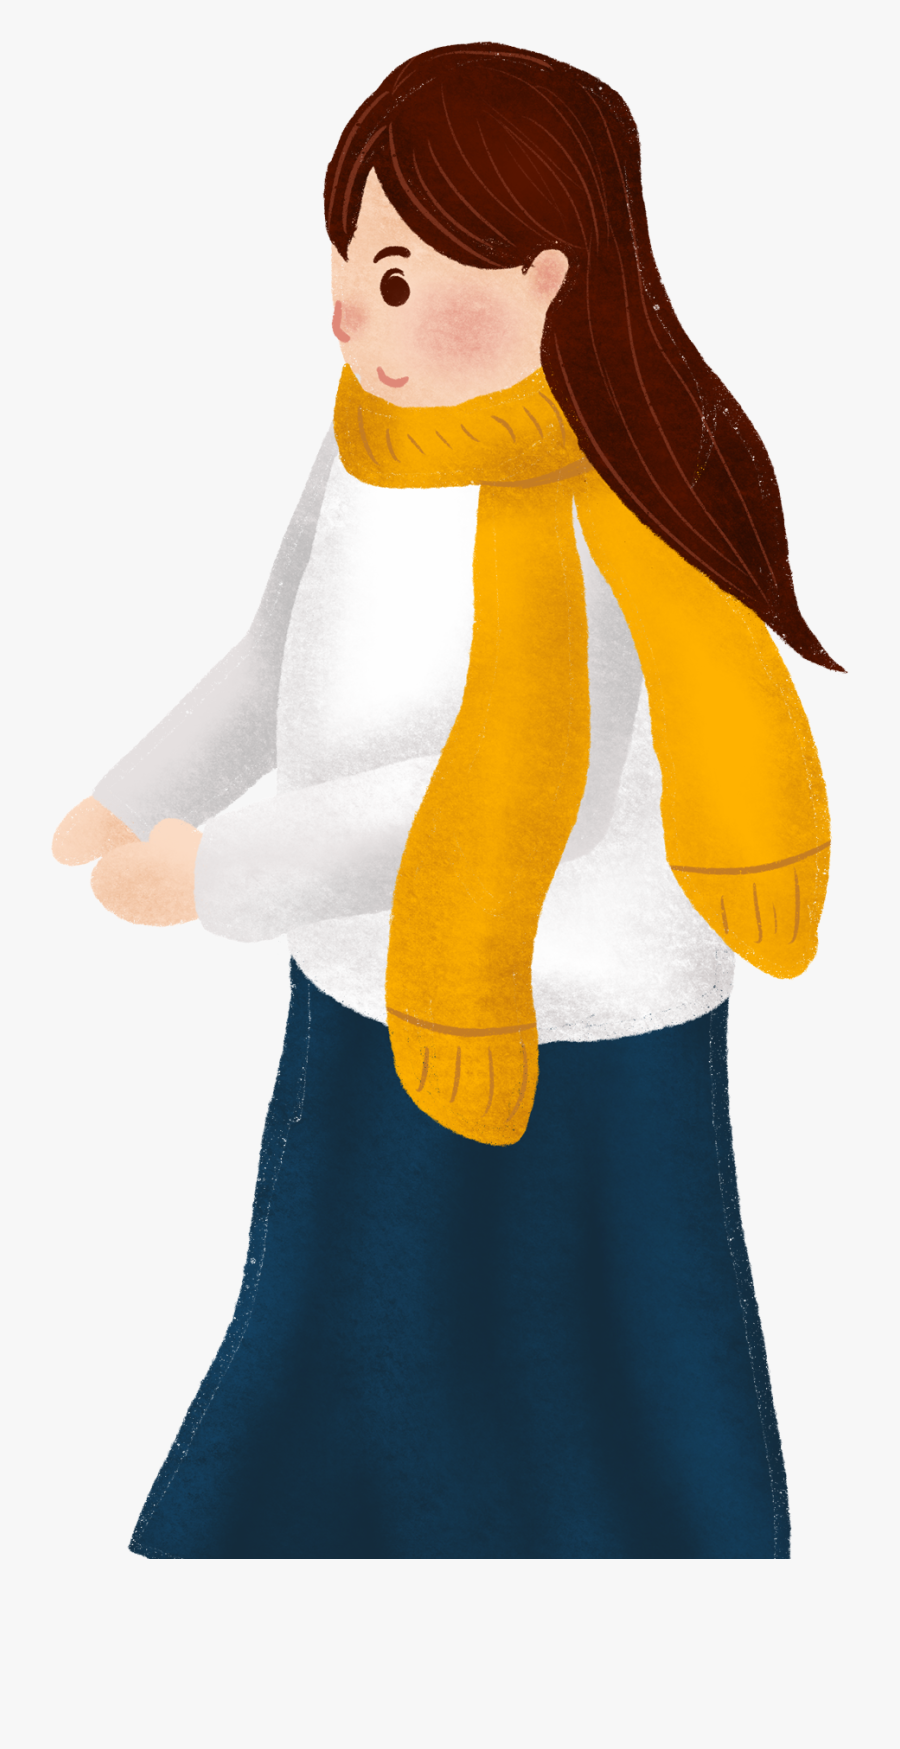 Painted Girl Fashion Scarf Png And Psd - Girl, Transparent Clipart